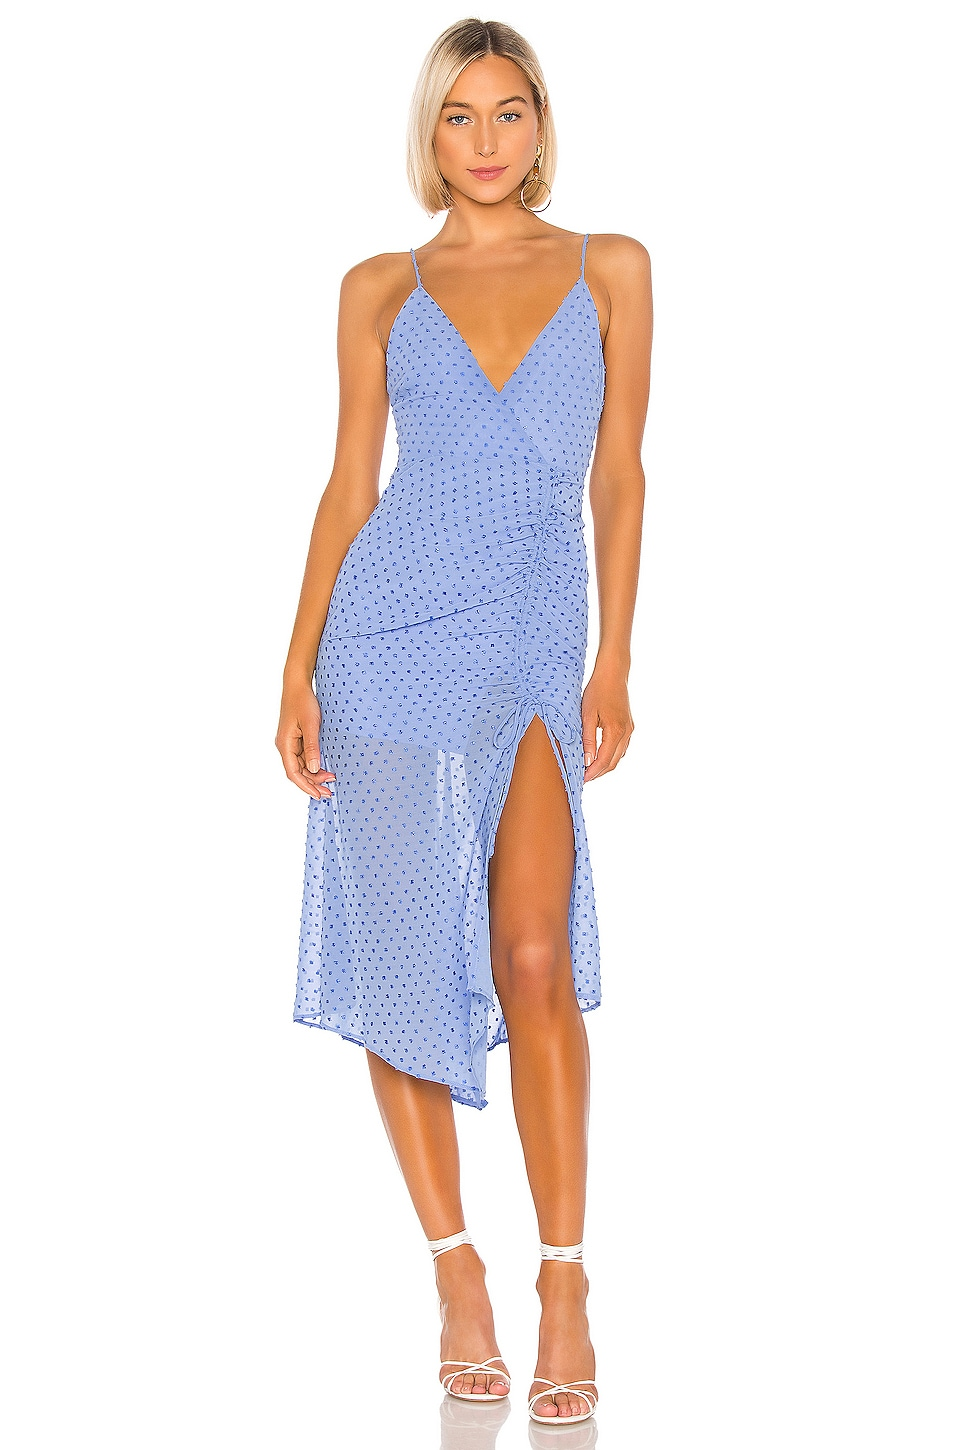 NBD Andre Midi Dress in Periwinkle Blue